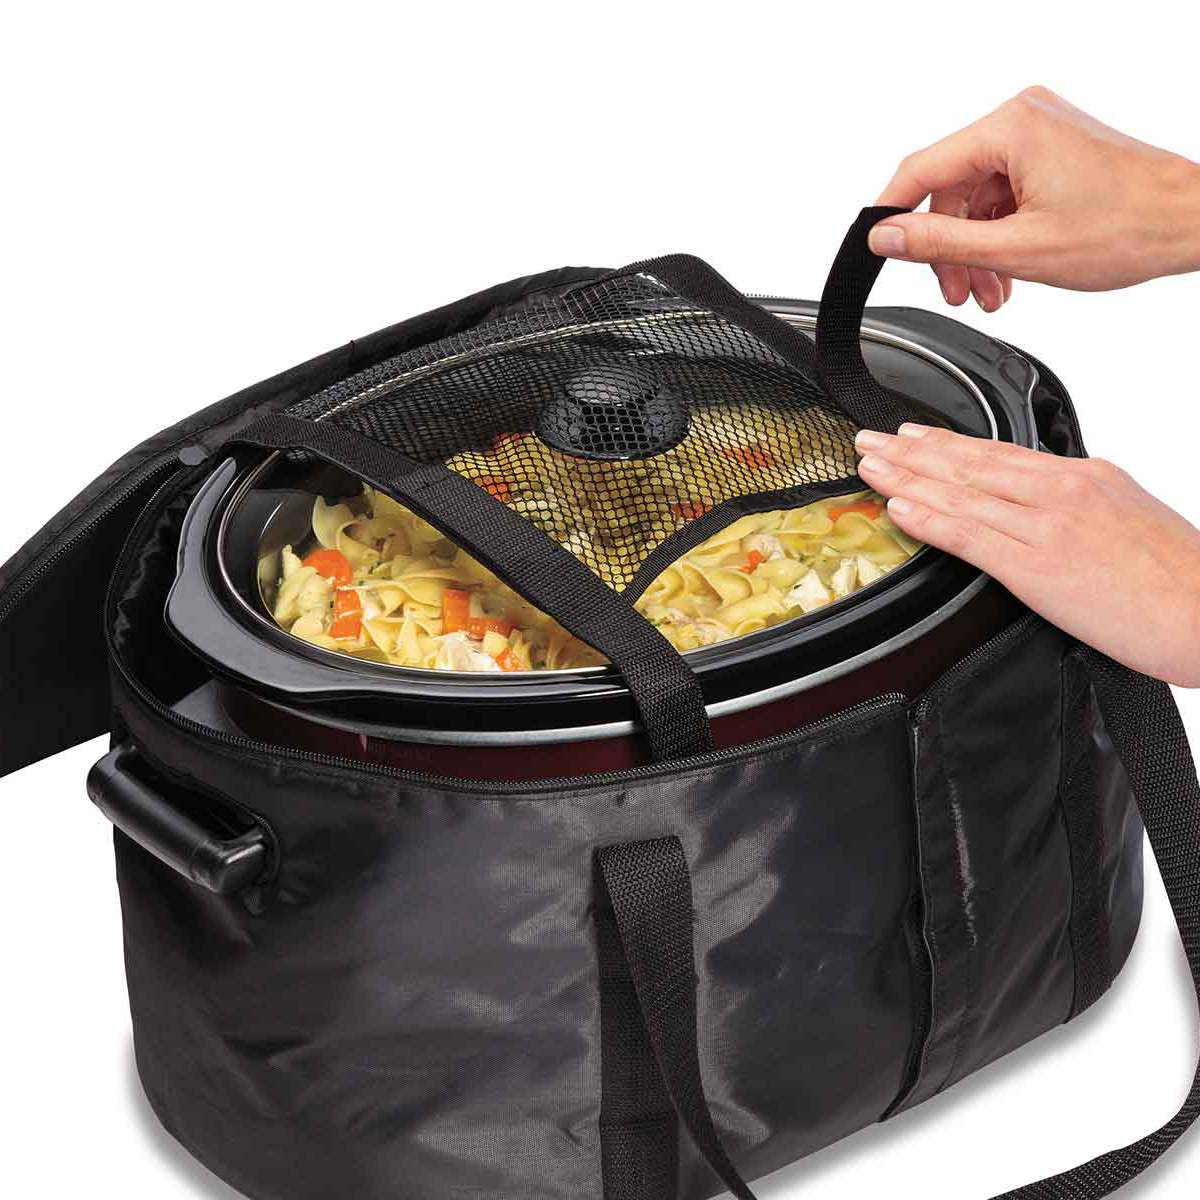 Crock Caddy™ Insulated Slow Cooker Bag (33002)